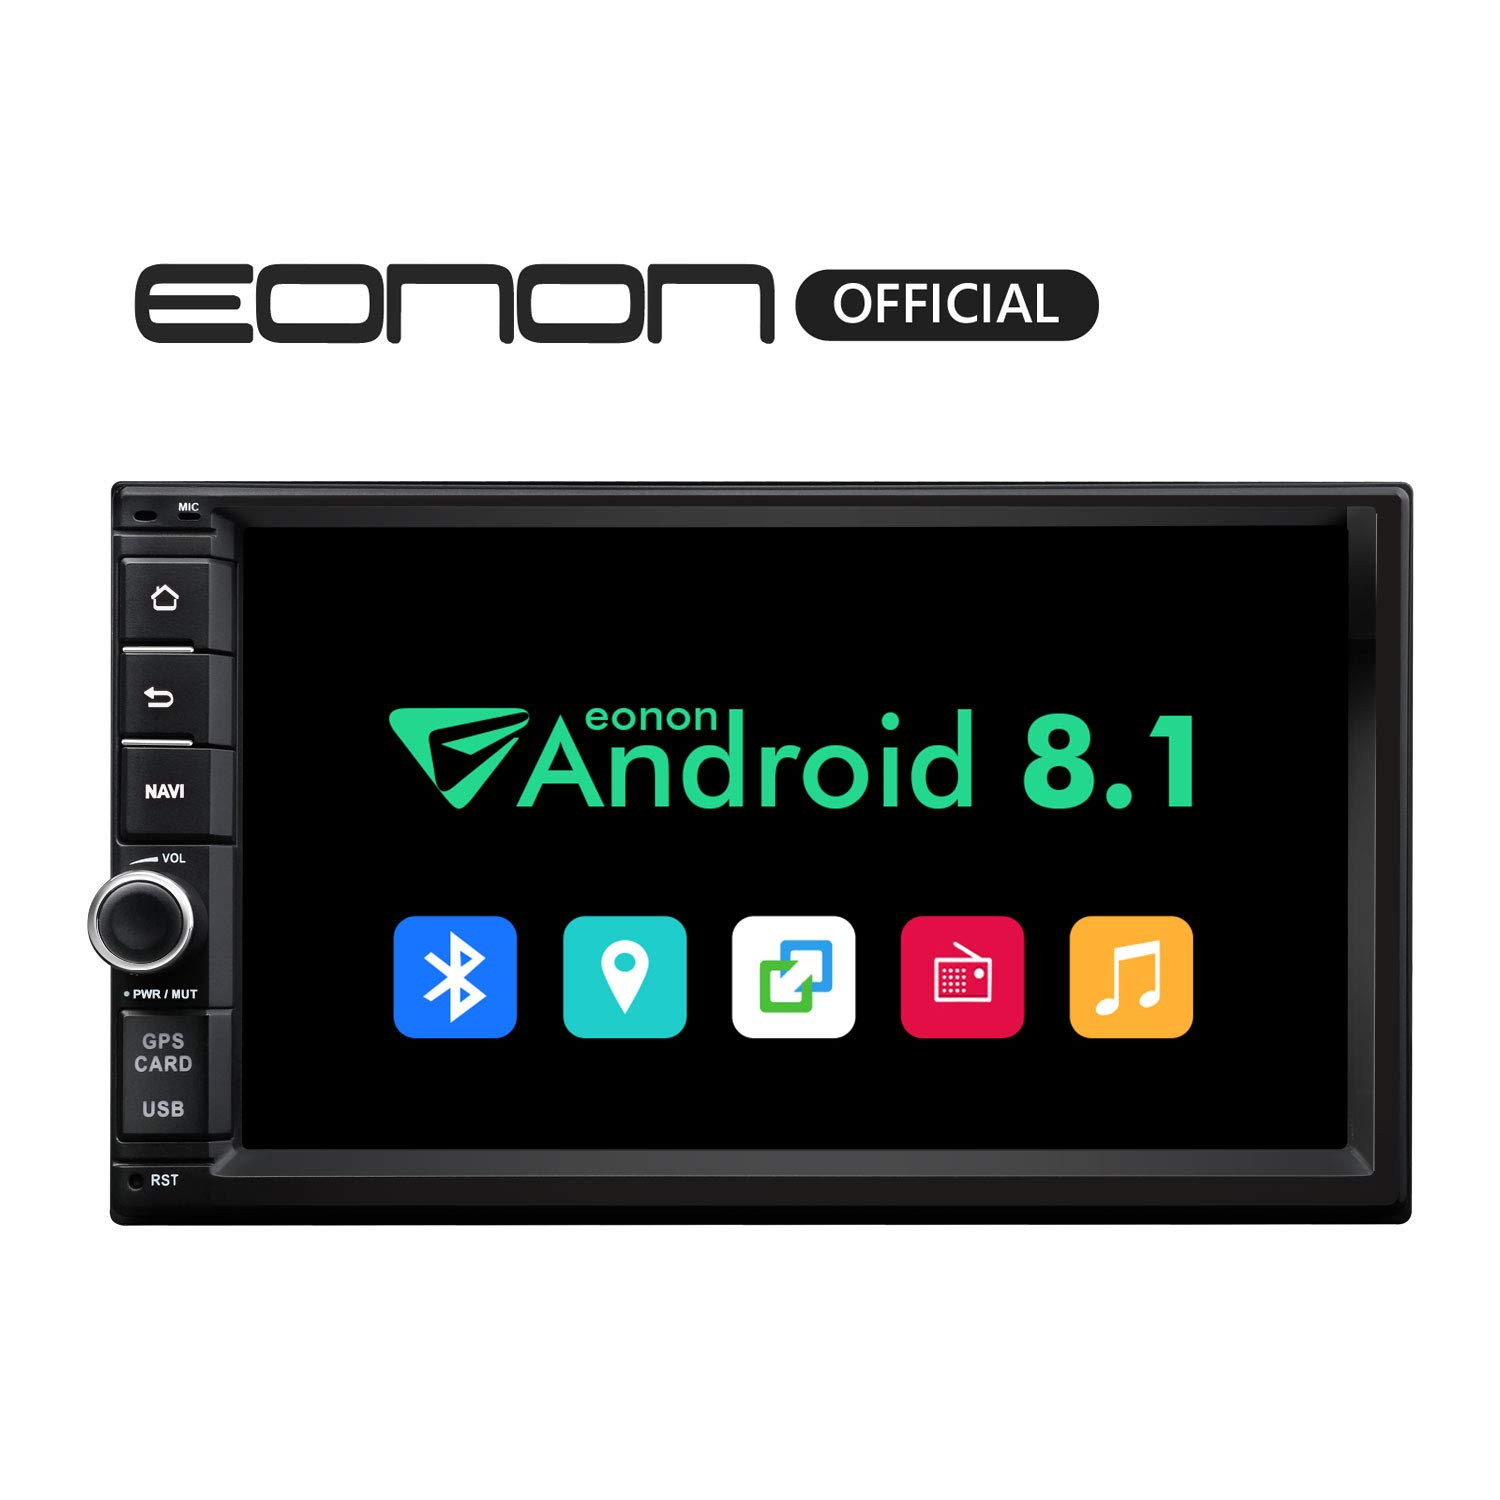 Double 2 Din Car Radios Eonon Android Car Radio Android 8.1 Double Din Car Stereo Radio 7 Inch 32GB ROM Car GPS Navigation Head Unit, Support Fastboot Bluetooth, WiFi Connection (NO DVD/CD)- GA2175